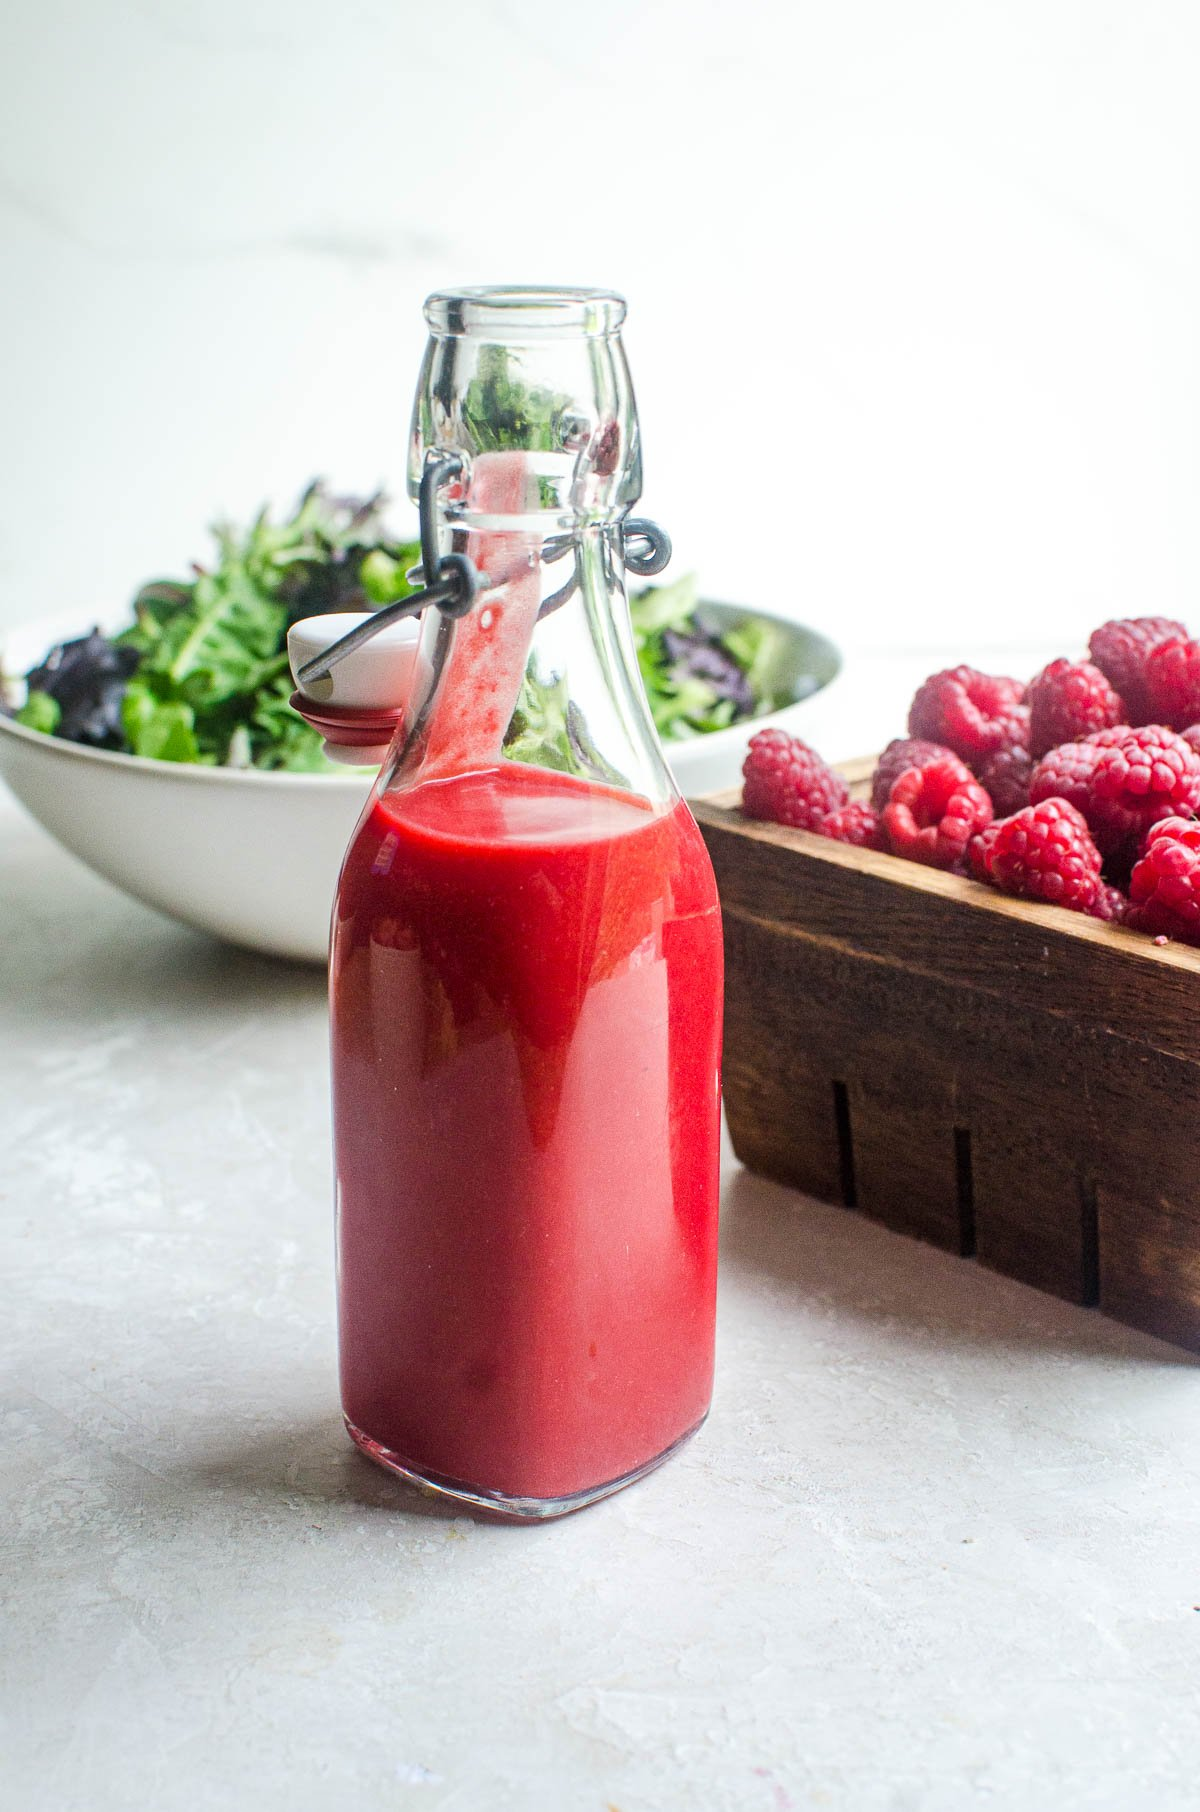 A bottle of raspberry vinaigrette dressing in front of a box of raspberries and bowl of salad.